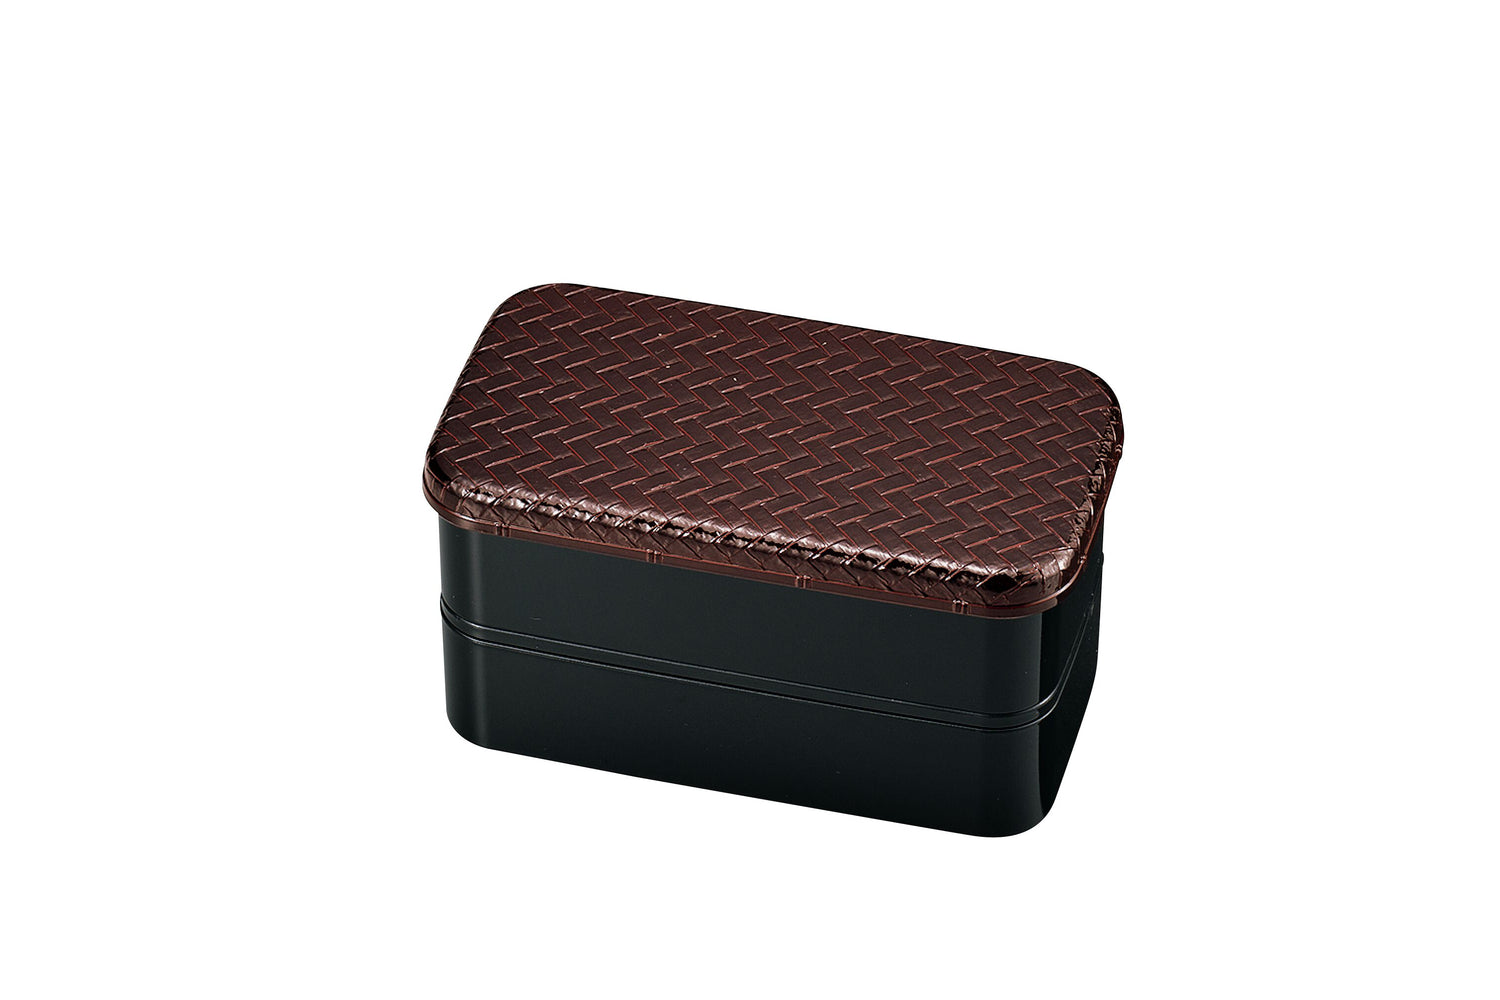 Ajiro Dark Brown Bento Box | Medium by Hakoya - Bento&co Japanese Bento Lunch Boxes and Kitchenware Specialists